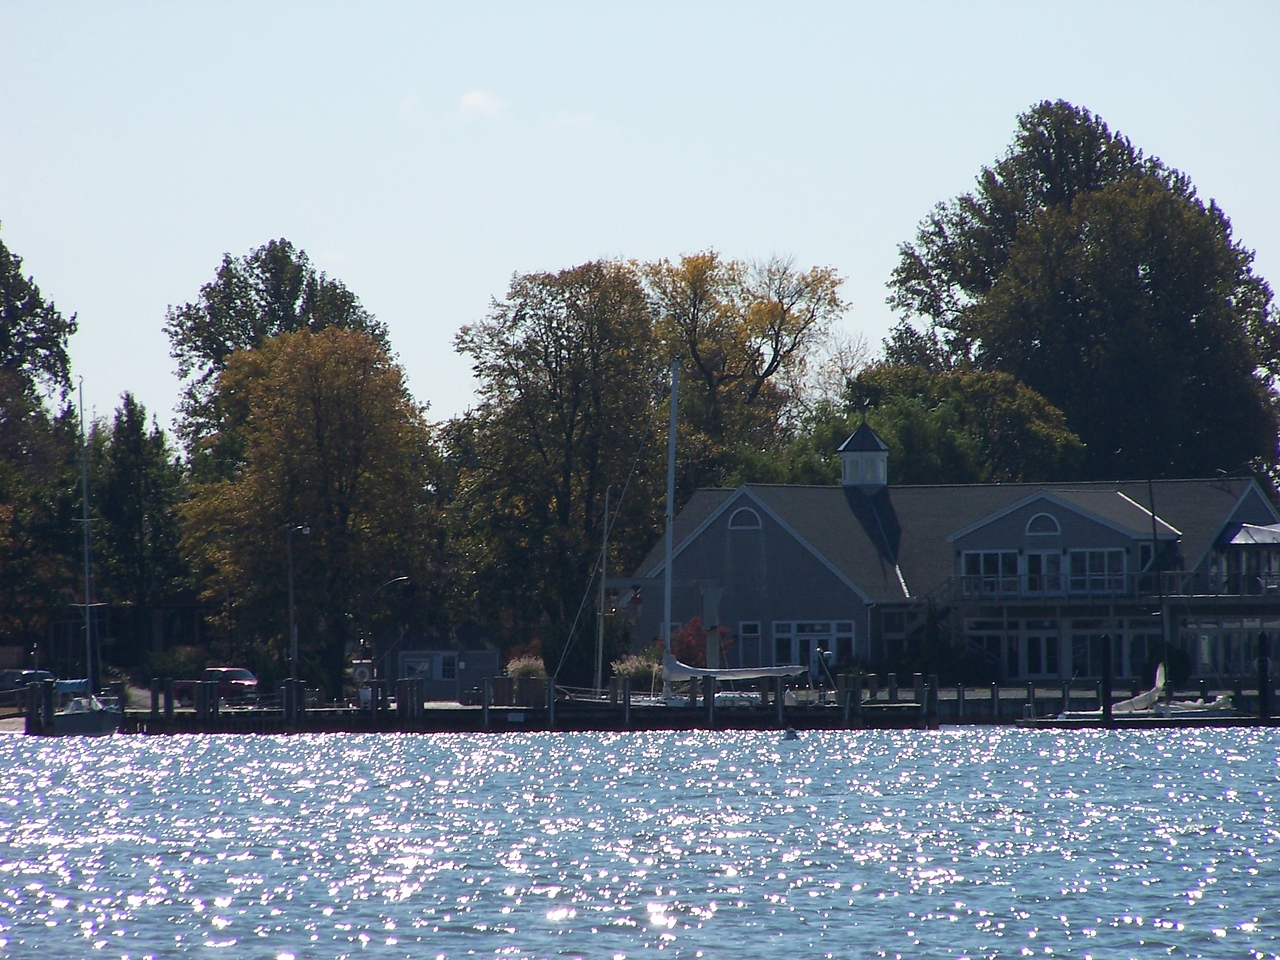 """10x Optical zoom of a """"house"""" on the shore.  This place was HUGE!"""